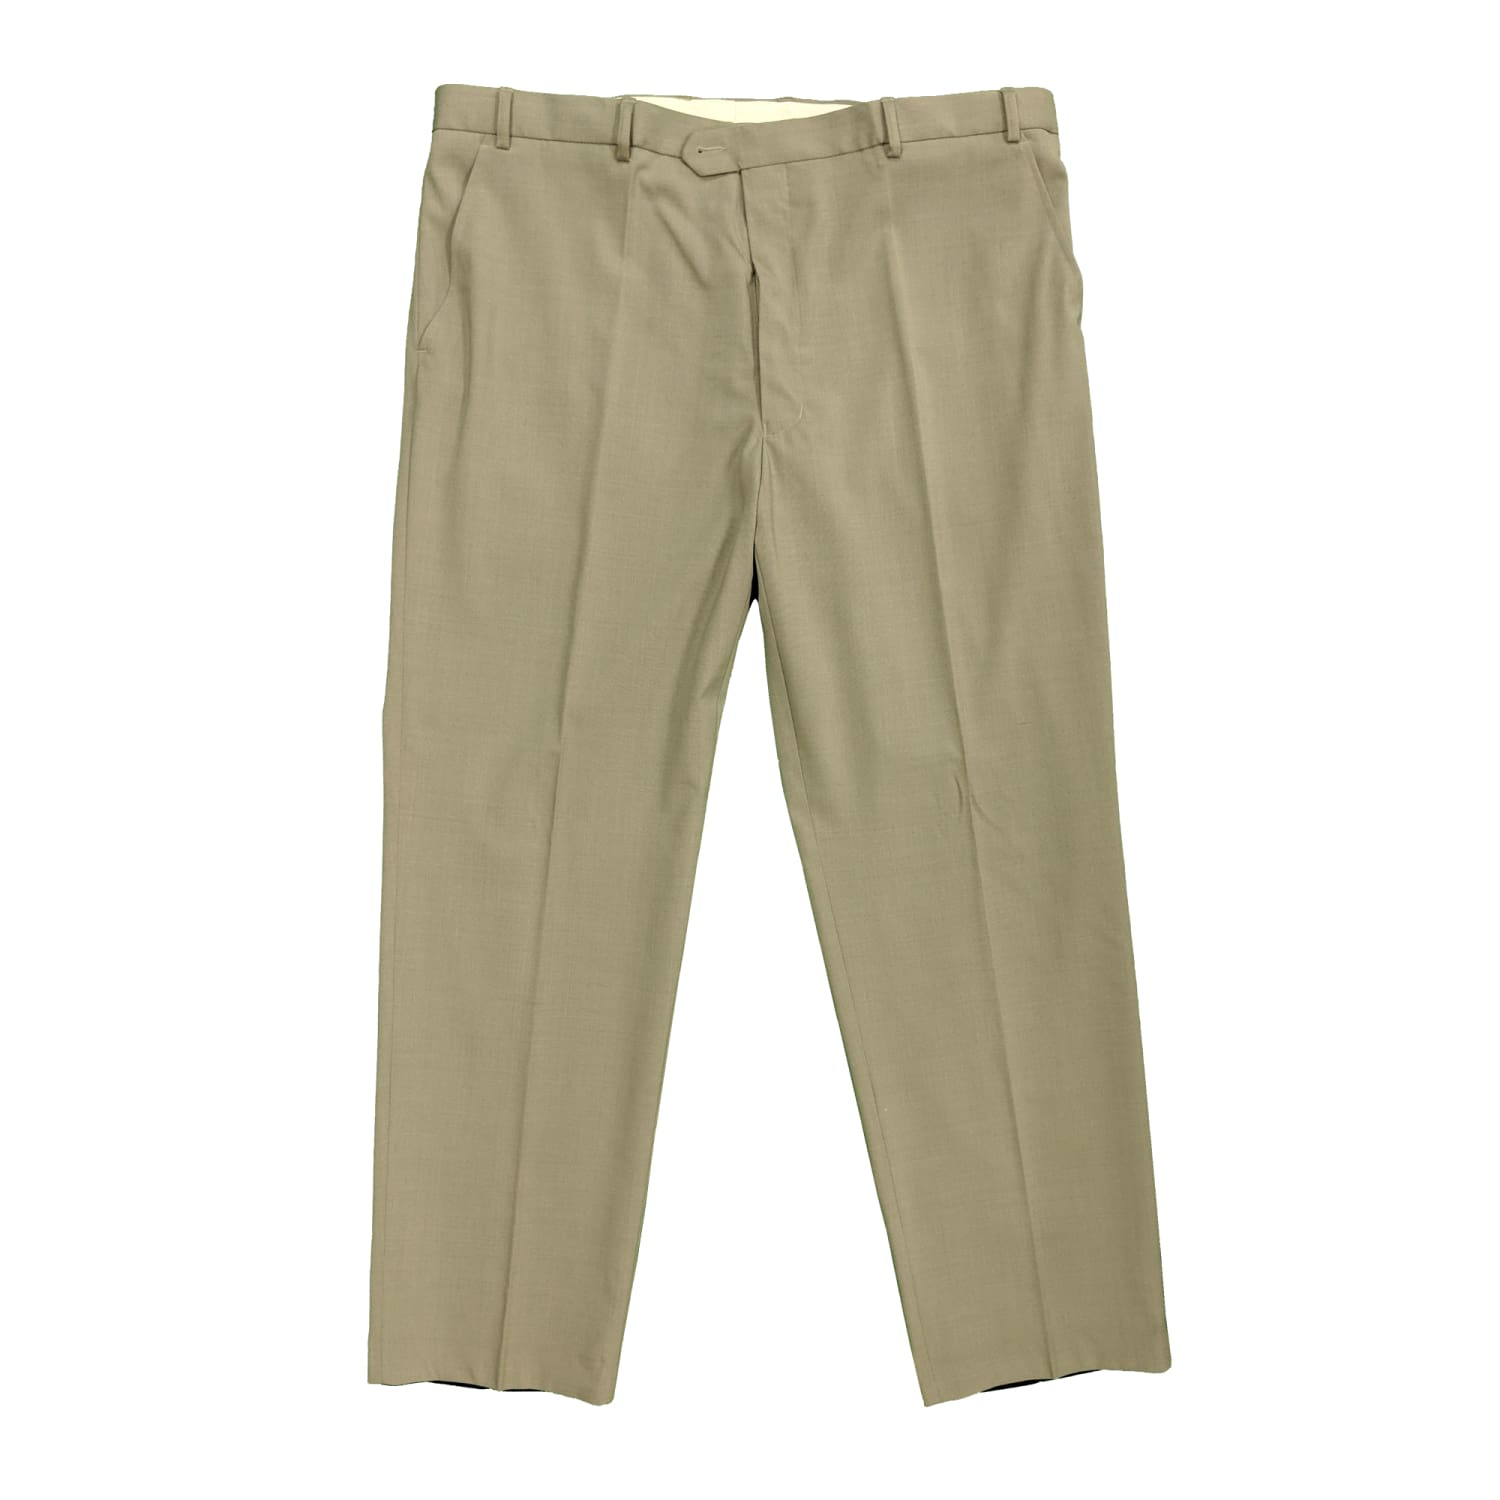 Carabou Trousers - GPWL - Fawn 1